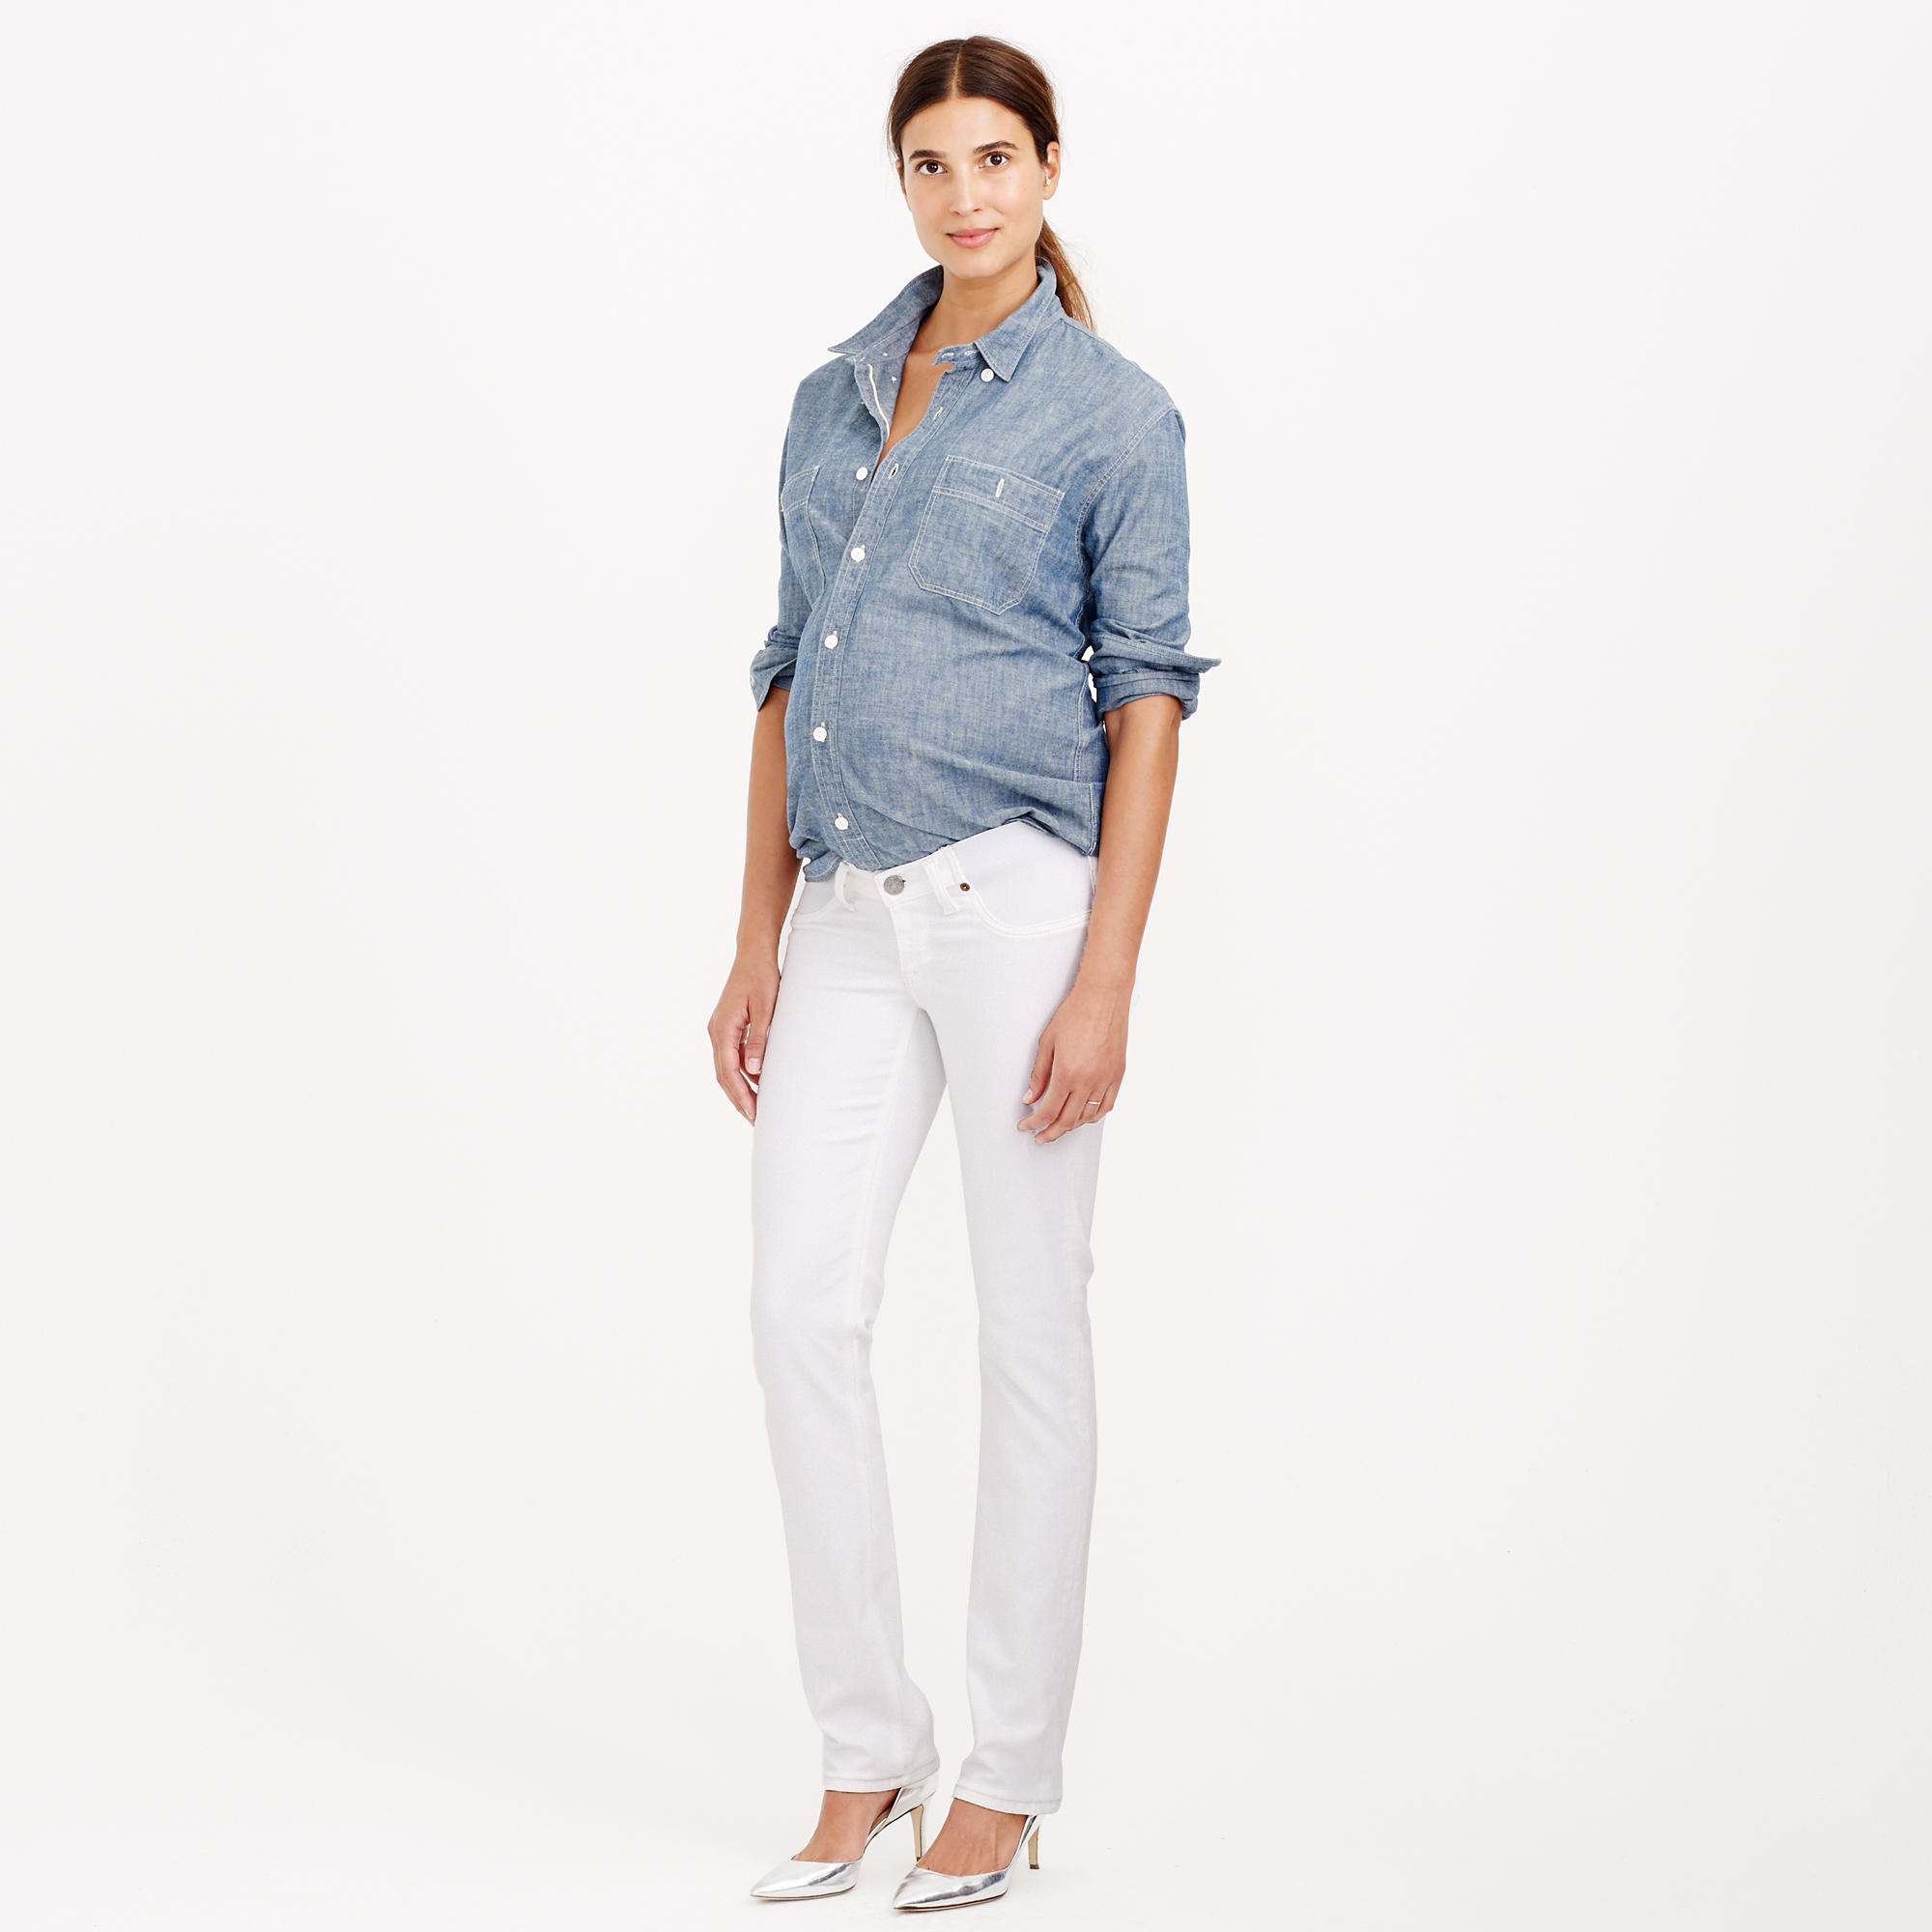 aa8fb94d7bb55 J.Crew Stretch Maternity Matchstick Jean In Chalk in White - Lyst